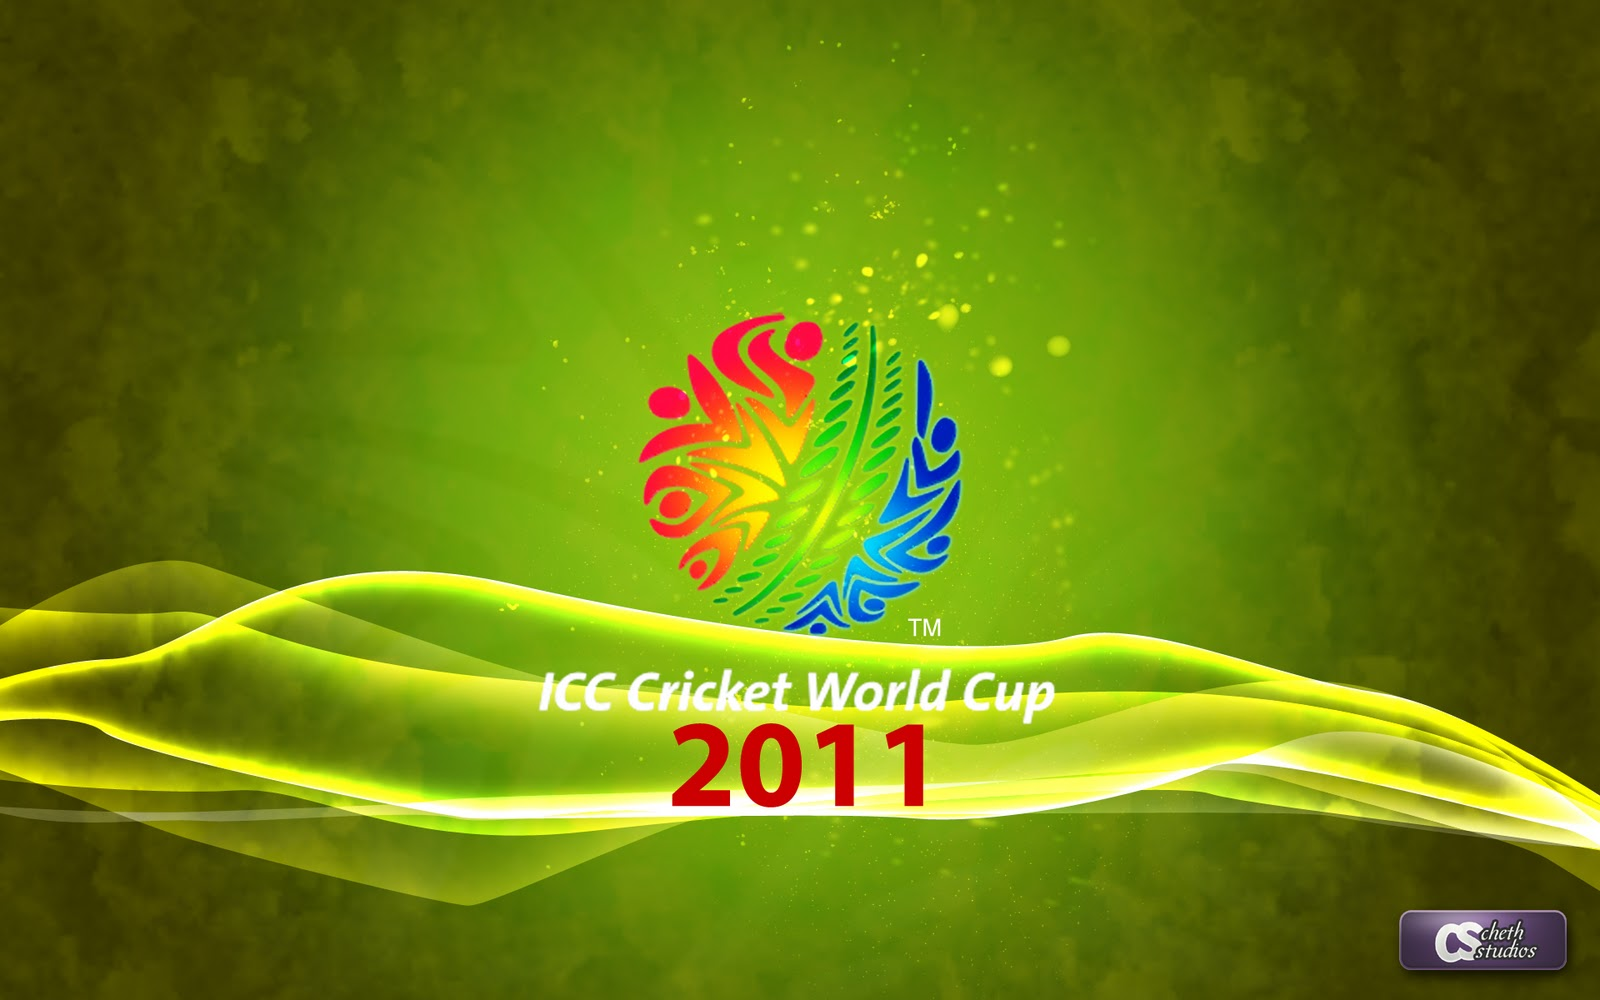 http://2.bp.blogspot.com/_bIDM70GluWY/TUvOCMzOyUI/AAAAAAAAAKU/GNs_hNTl1bE/s1600/icc-cricket-world-cup-2011-wallpapers%25255Bworld4free.in%25255D%2B%2525286%252529.jpg